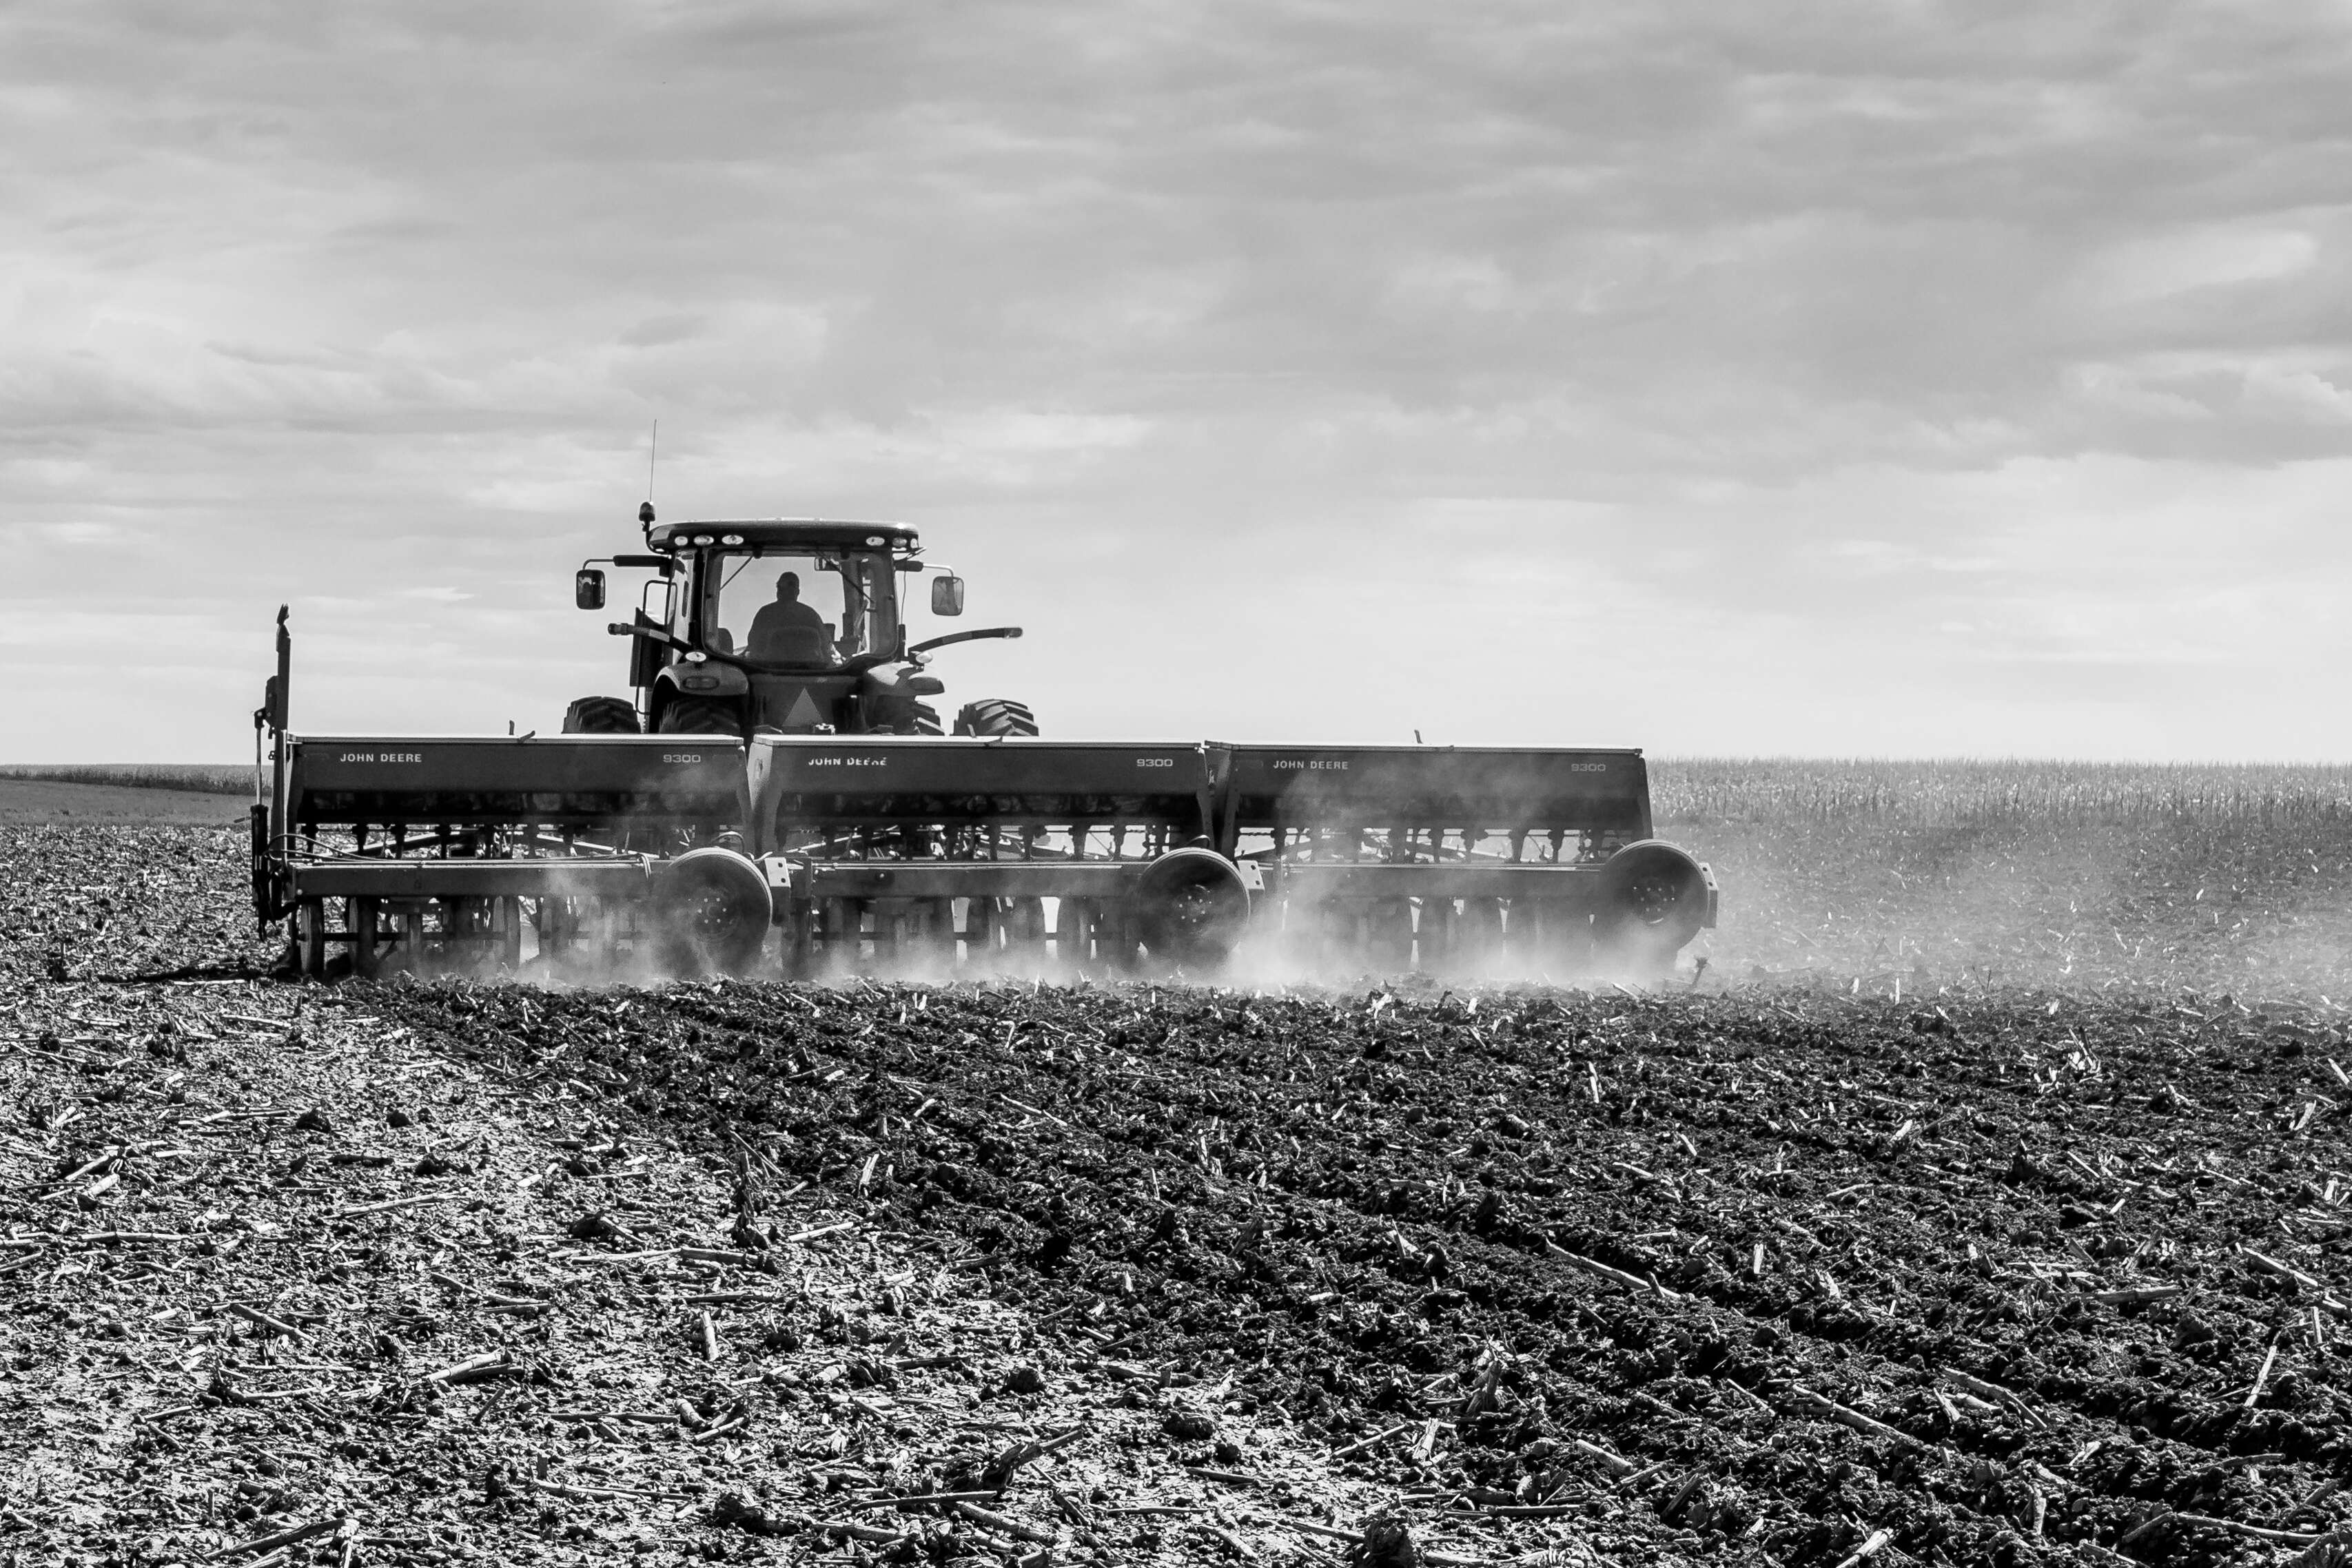 A farmer in Kansas working the field.